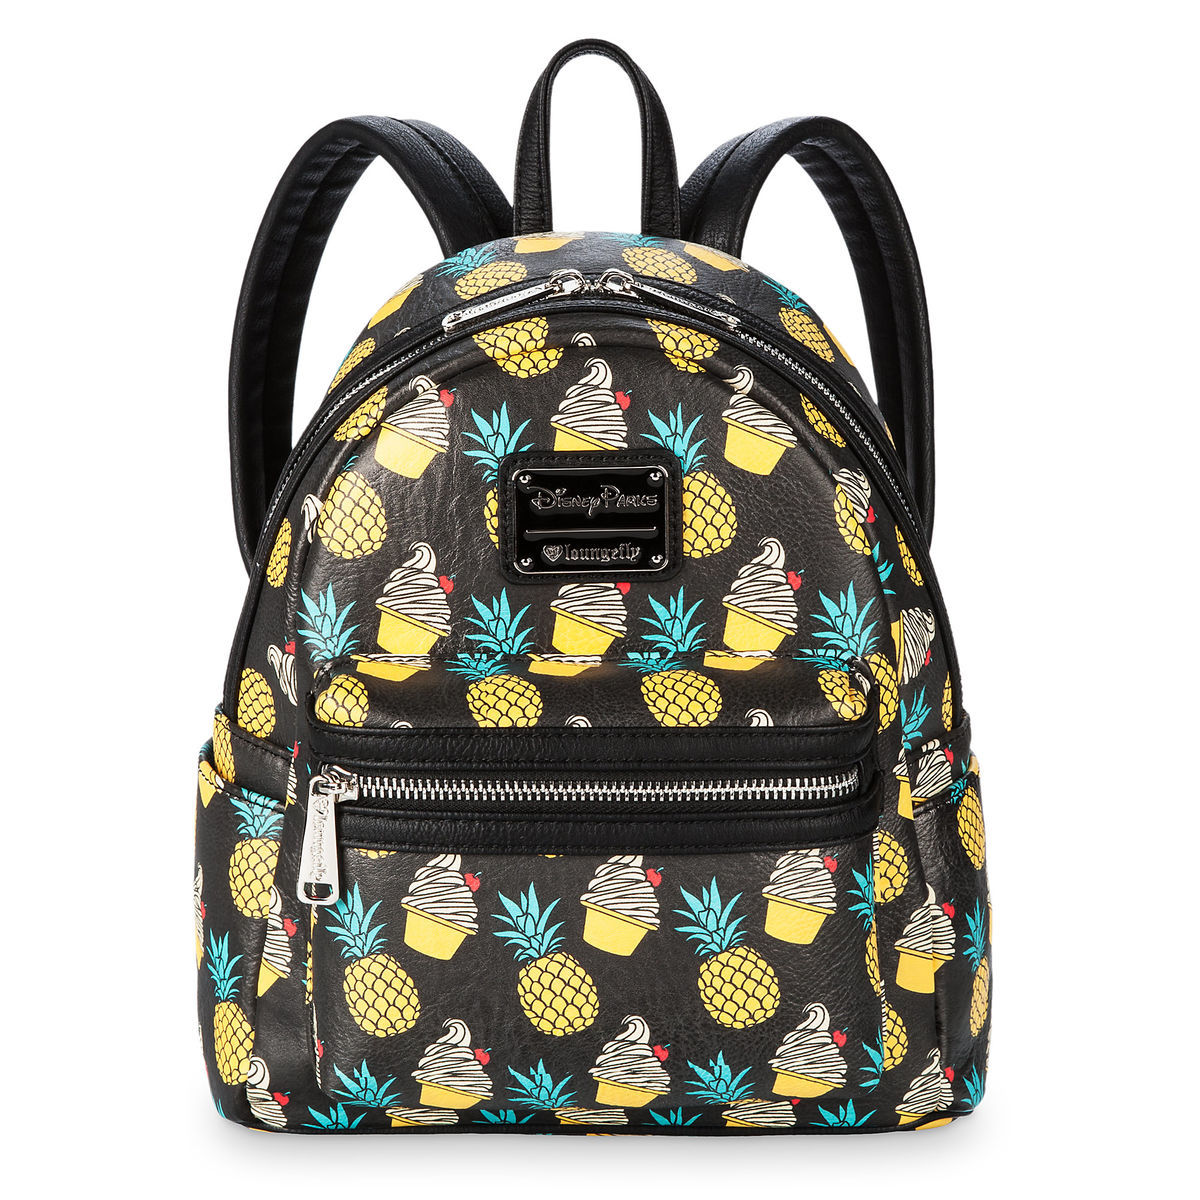 b742d09bc72 Product Image of Pineapple Swirl Mini Backpack by Loungefly   1